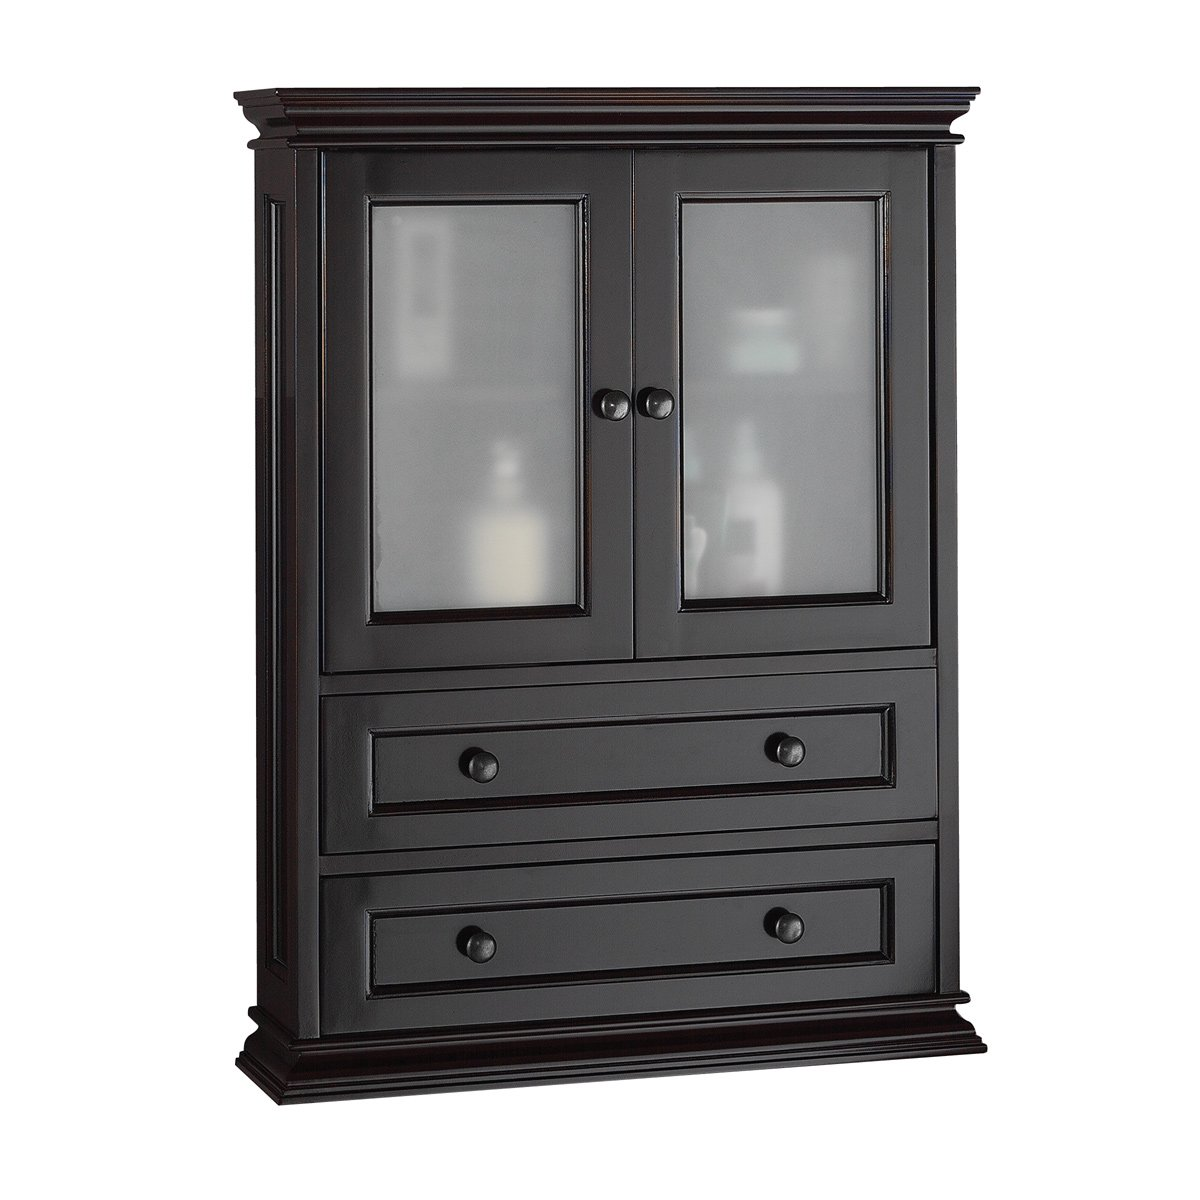 Foremost Becw2331 Berkshire Espresso Bathroom Wall Cabinet Foremost Expresso Amazon Com